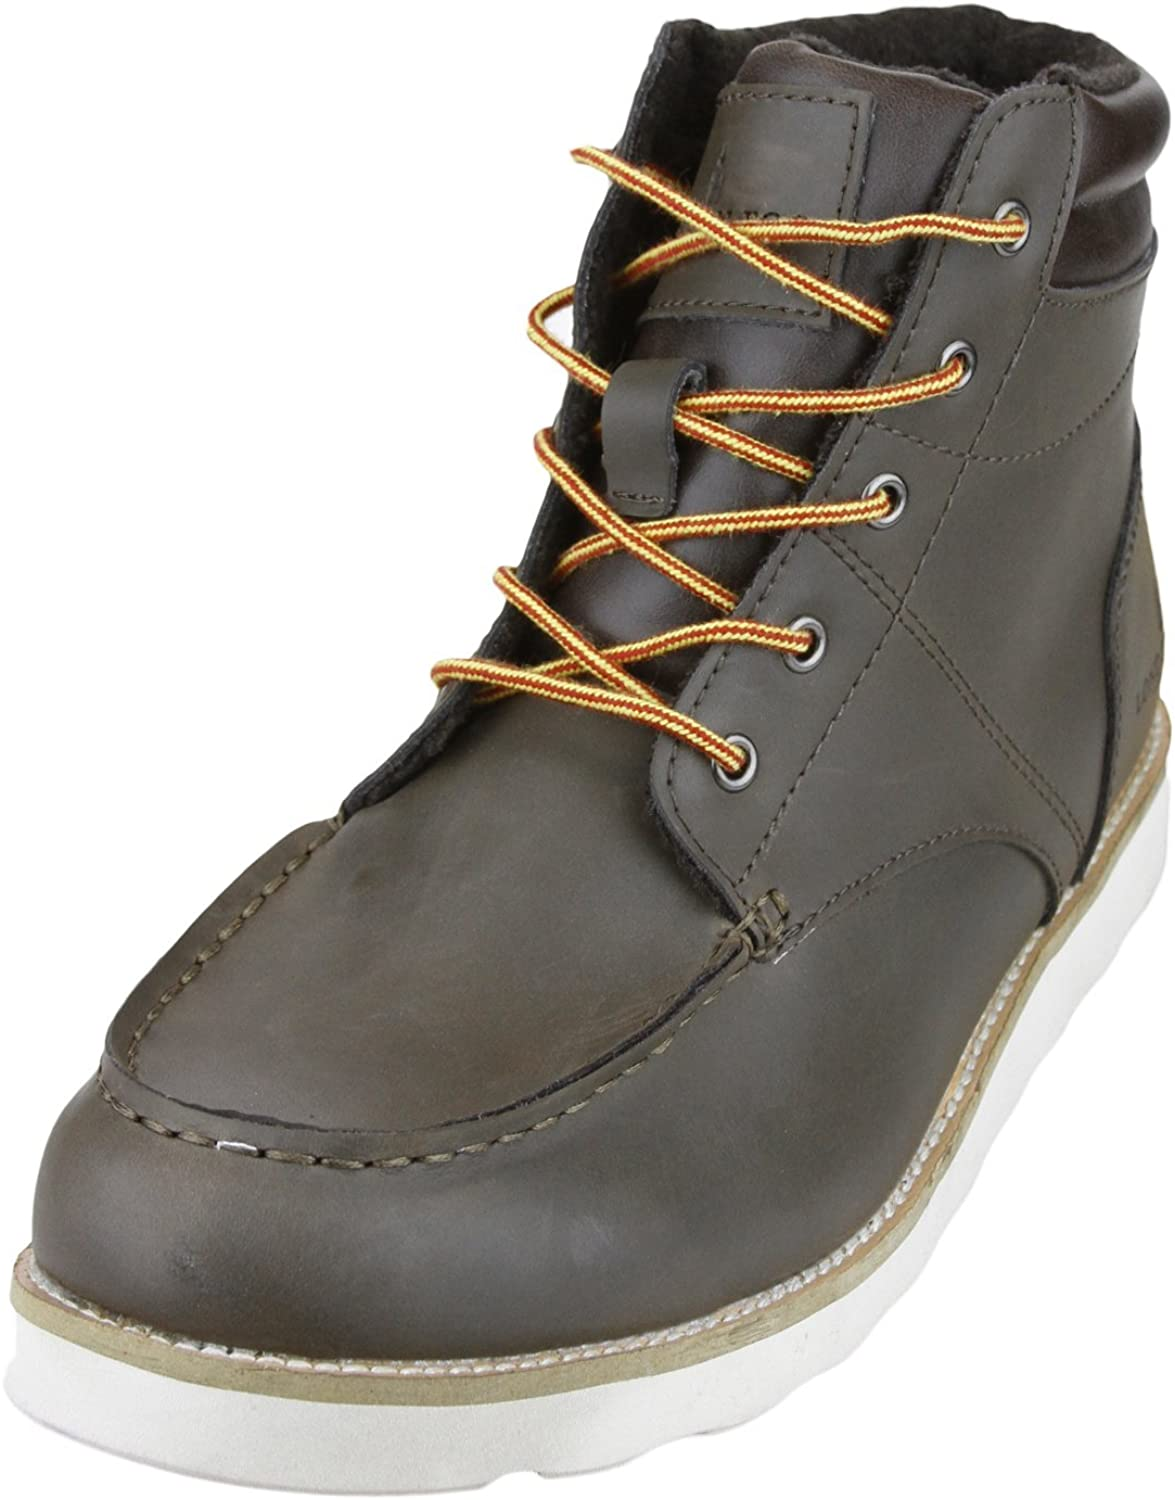 London Fog Men's Rinx Boots